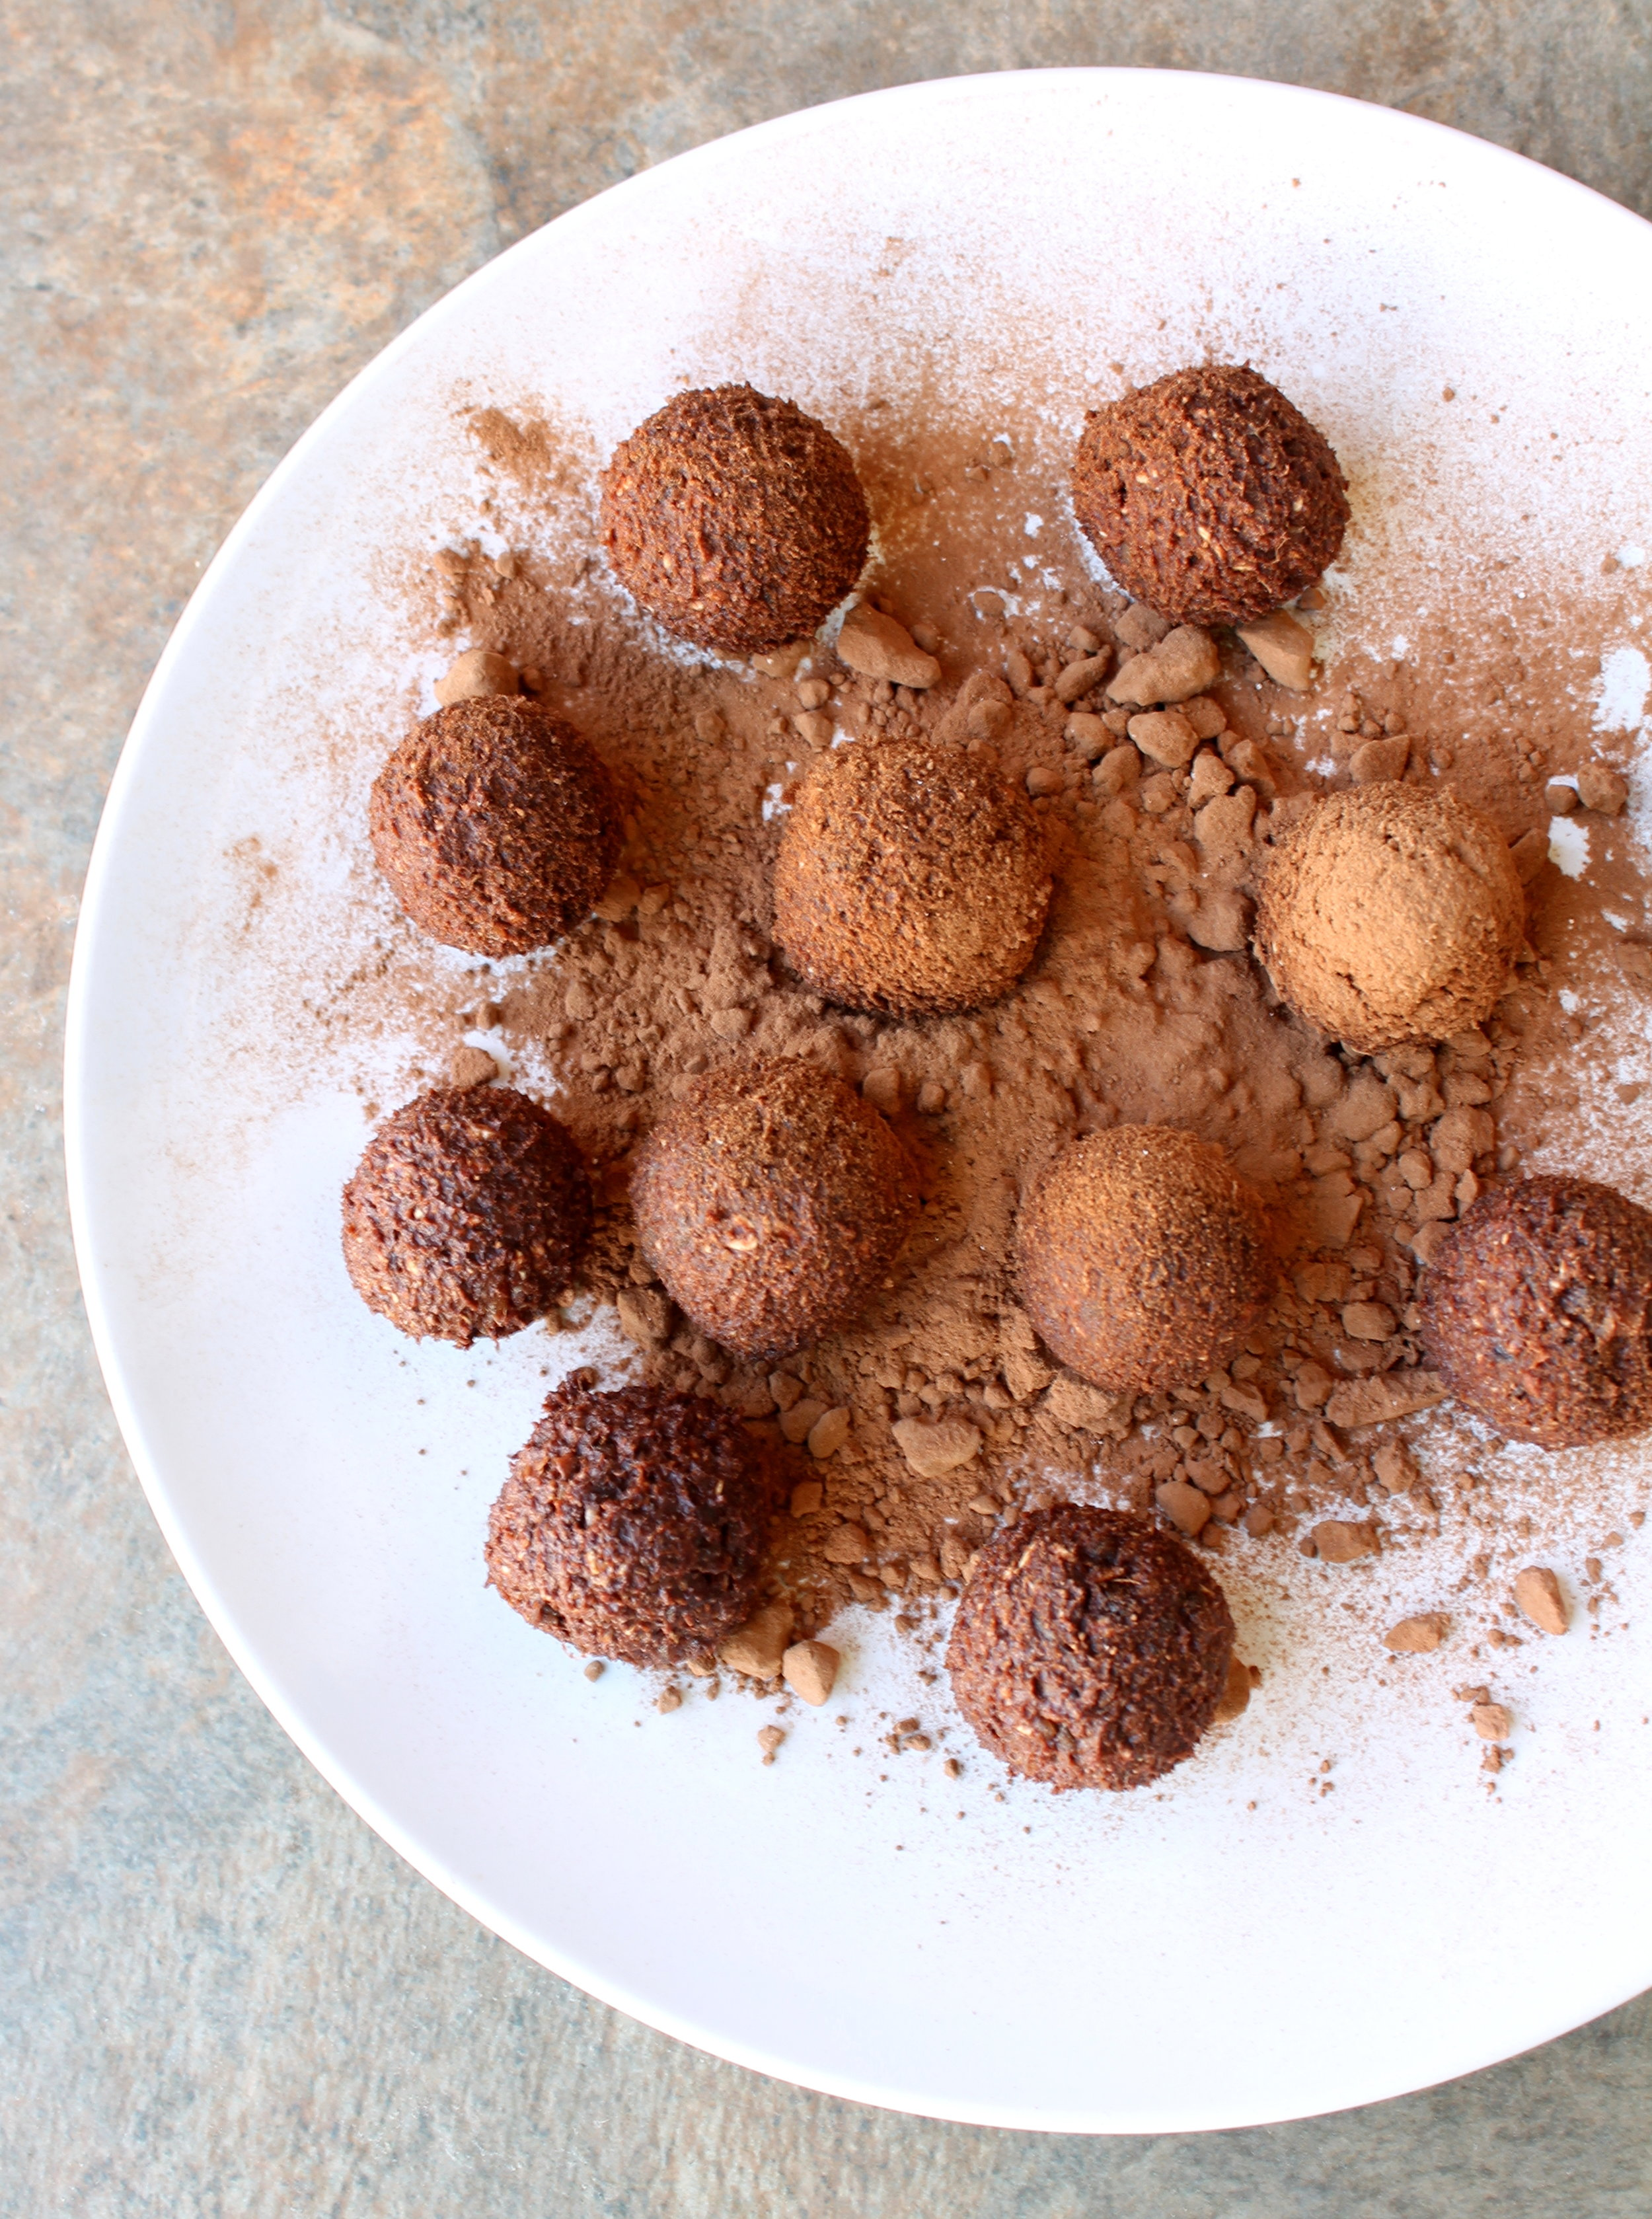 Chocolate Date Bites are naturally gluten-free, vegan snack that requires a bowl and 10 minutes of your time.